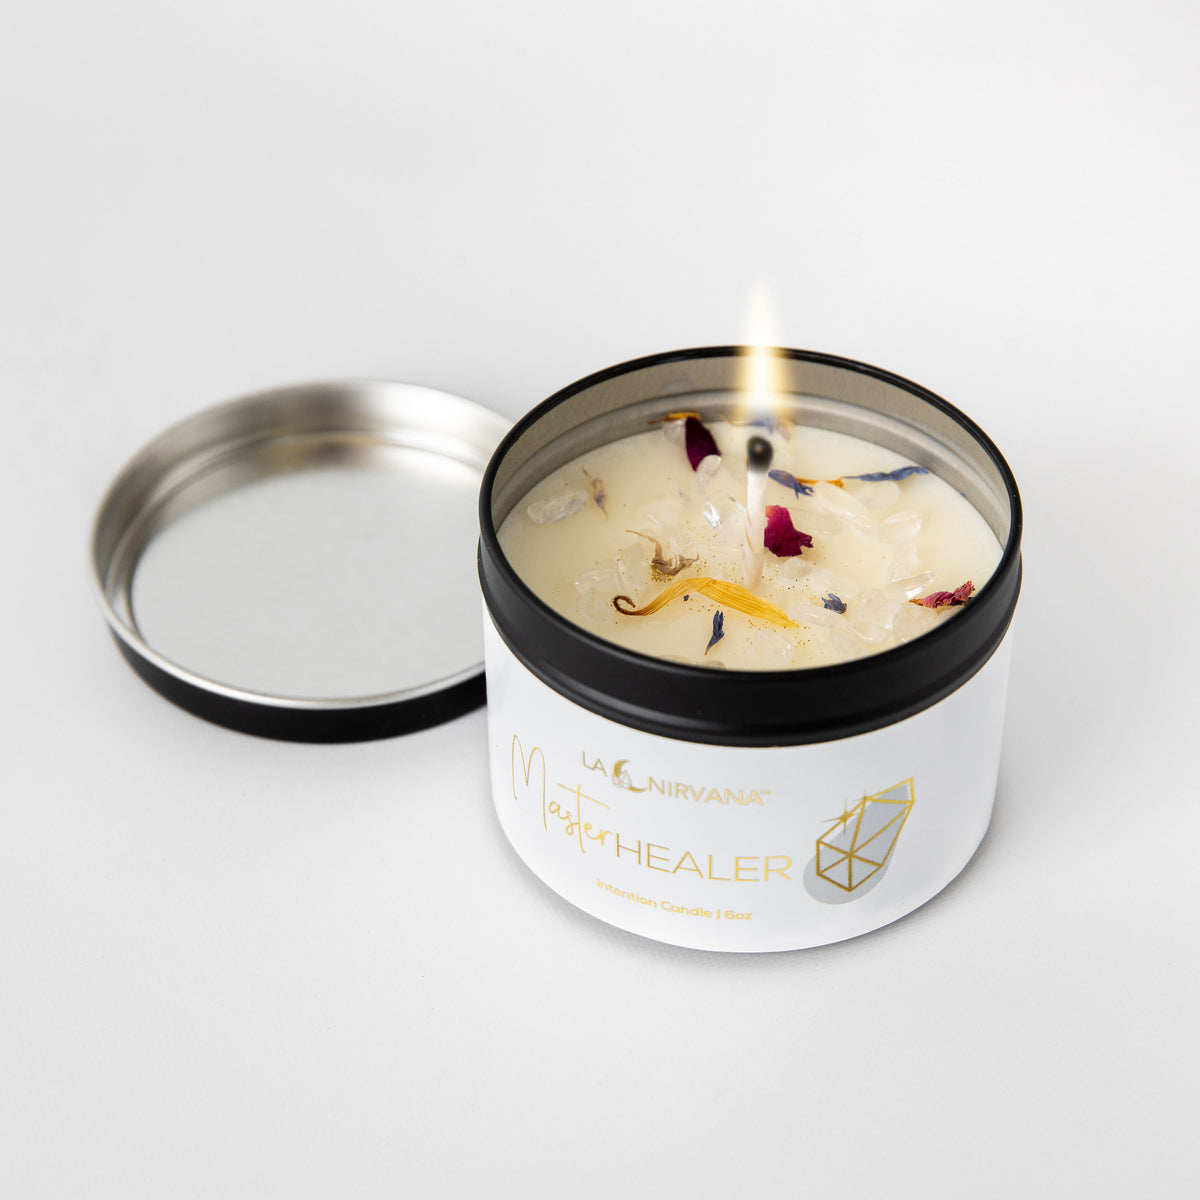 Master Healer Intention Candle